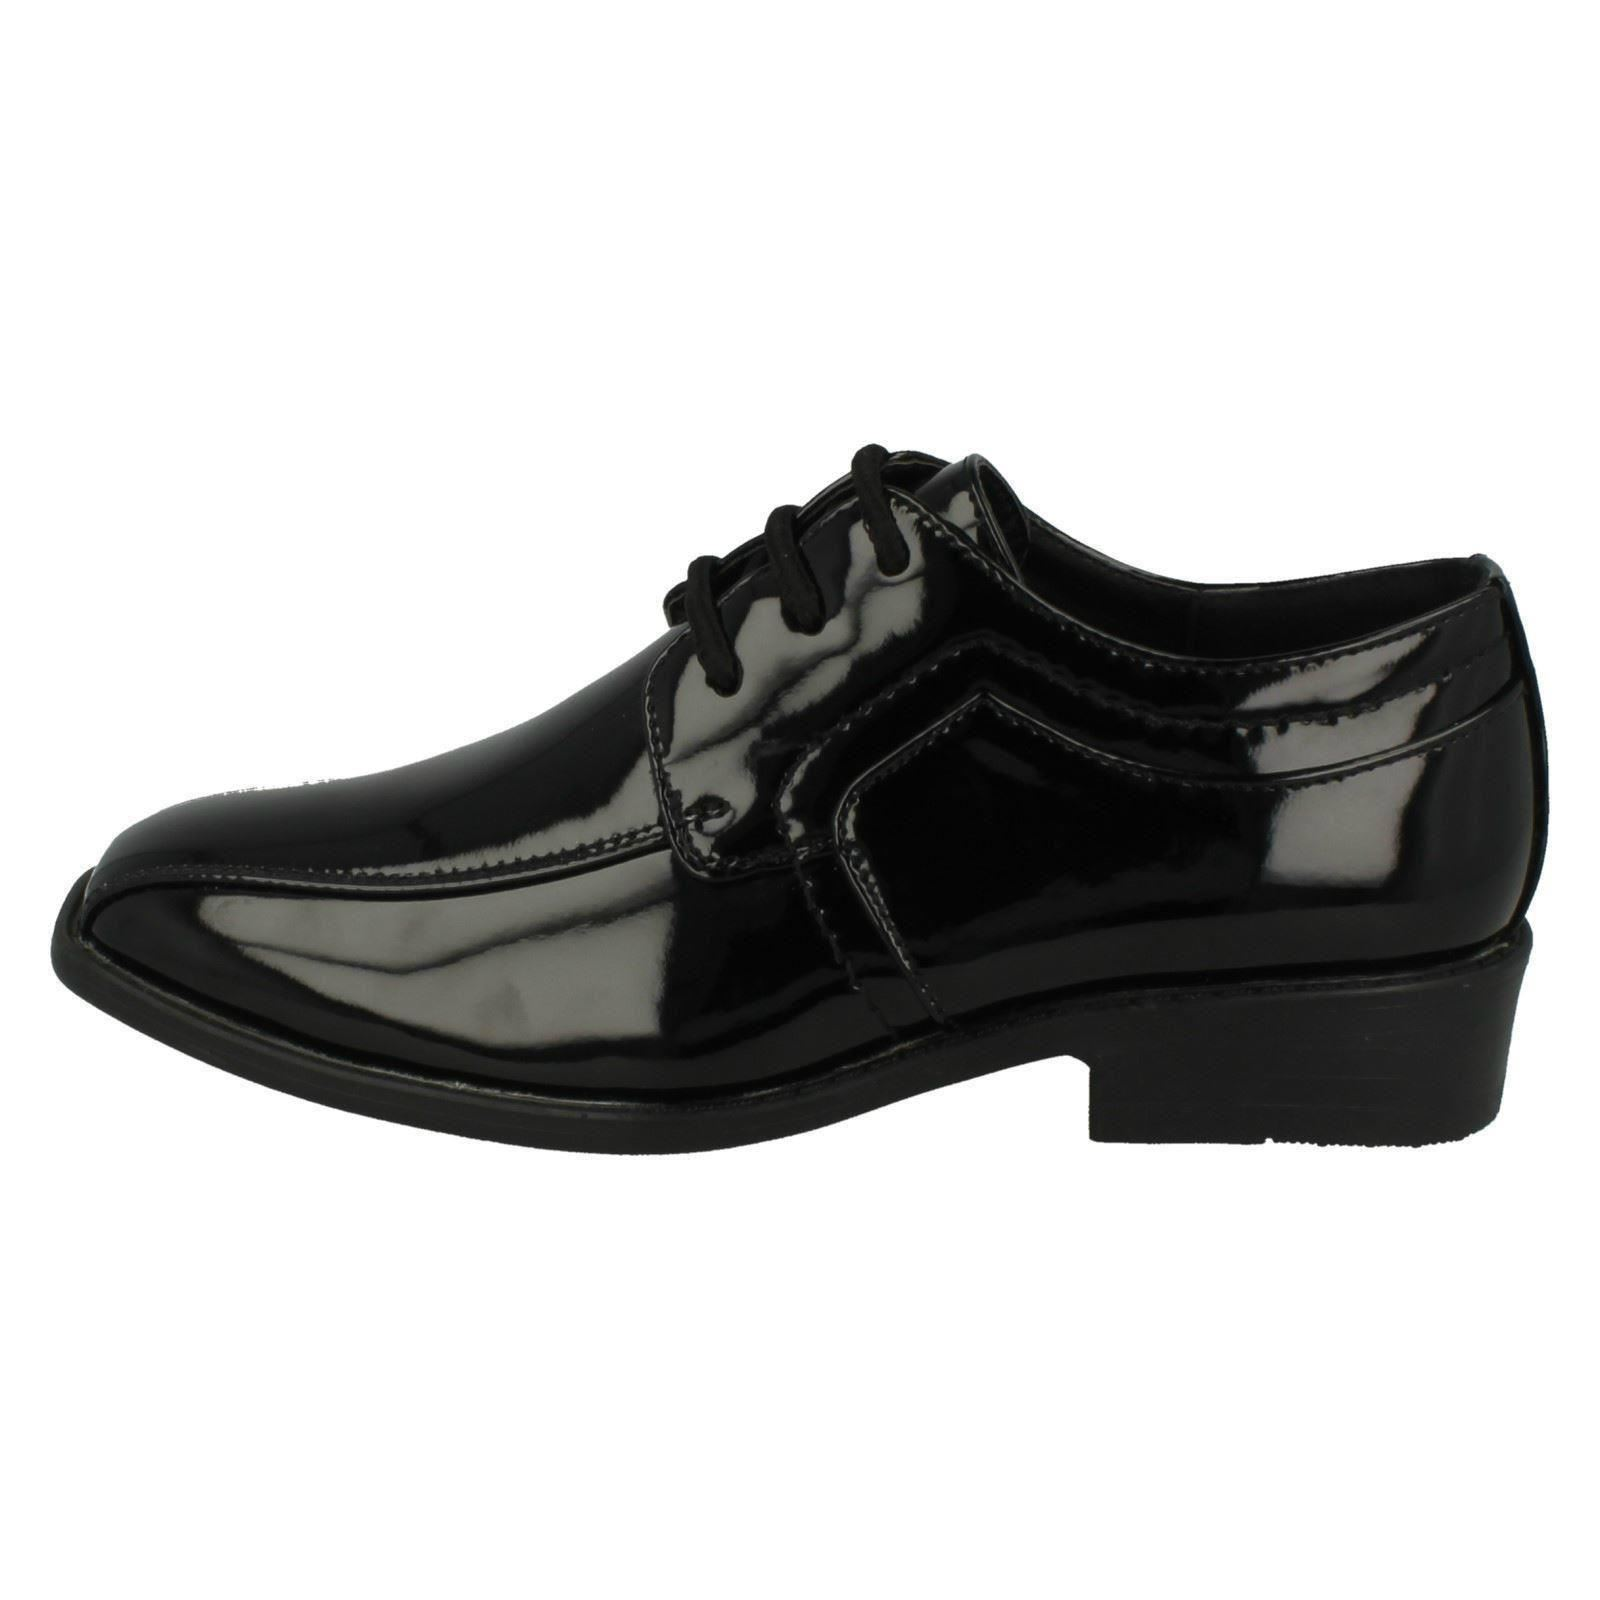 dfe150c773a1 Boys JCDees Trendy Lace up Formal Shoes N1109 Black Patent Junior 2 UK  Standard for sale online